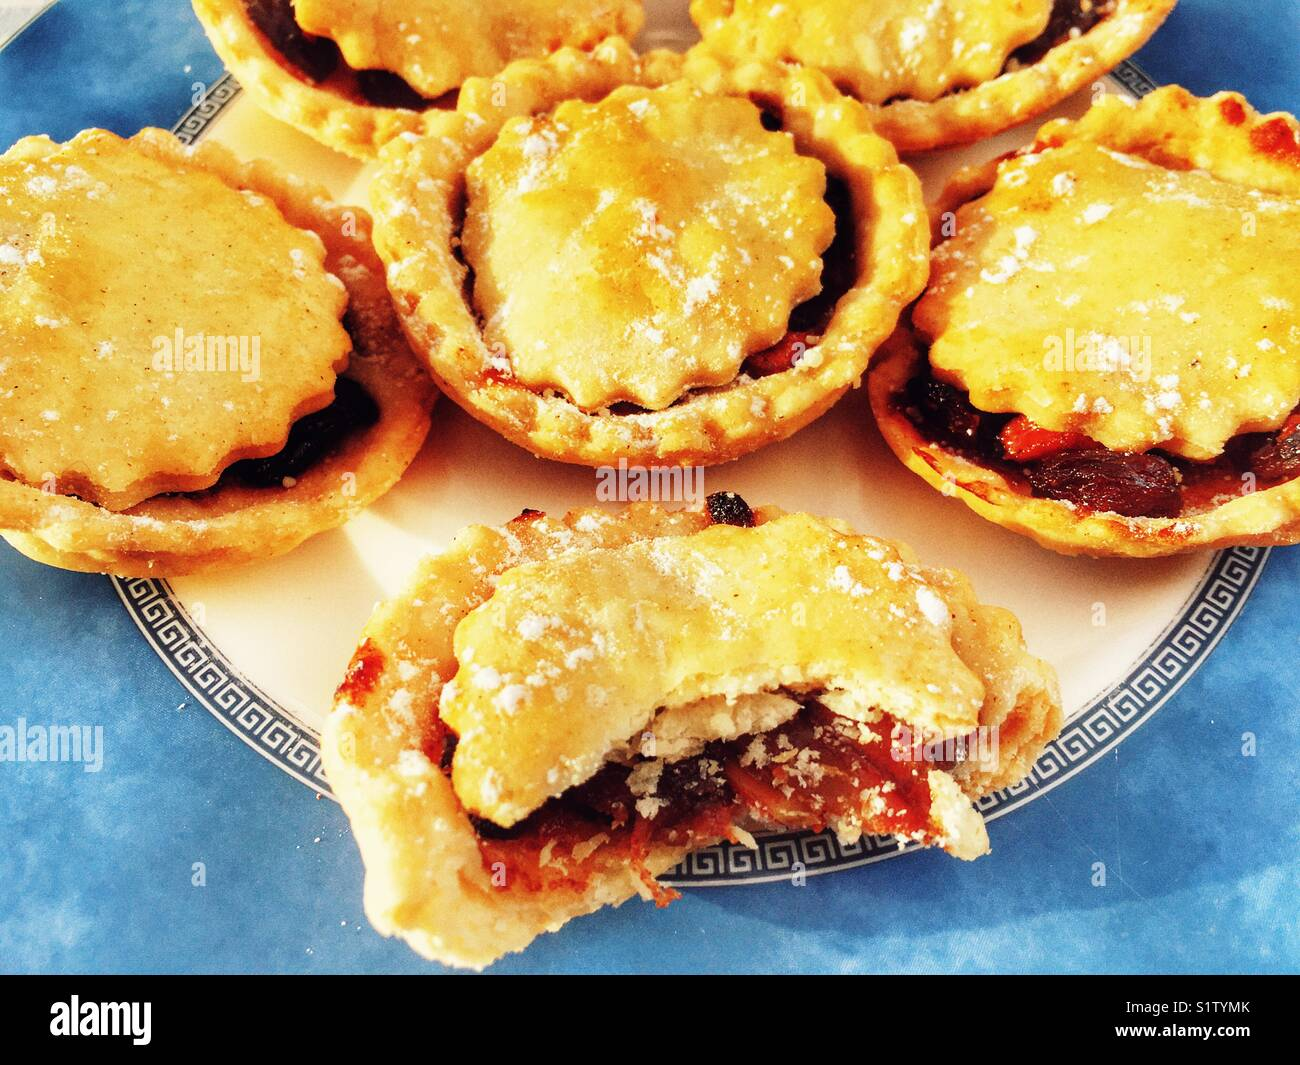 Homemade mince pies - Stock Image